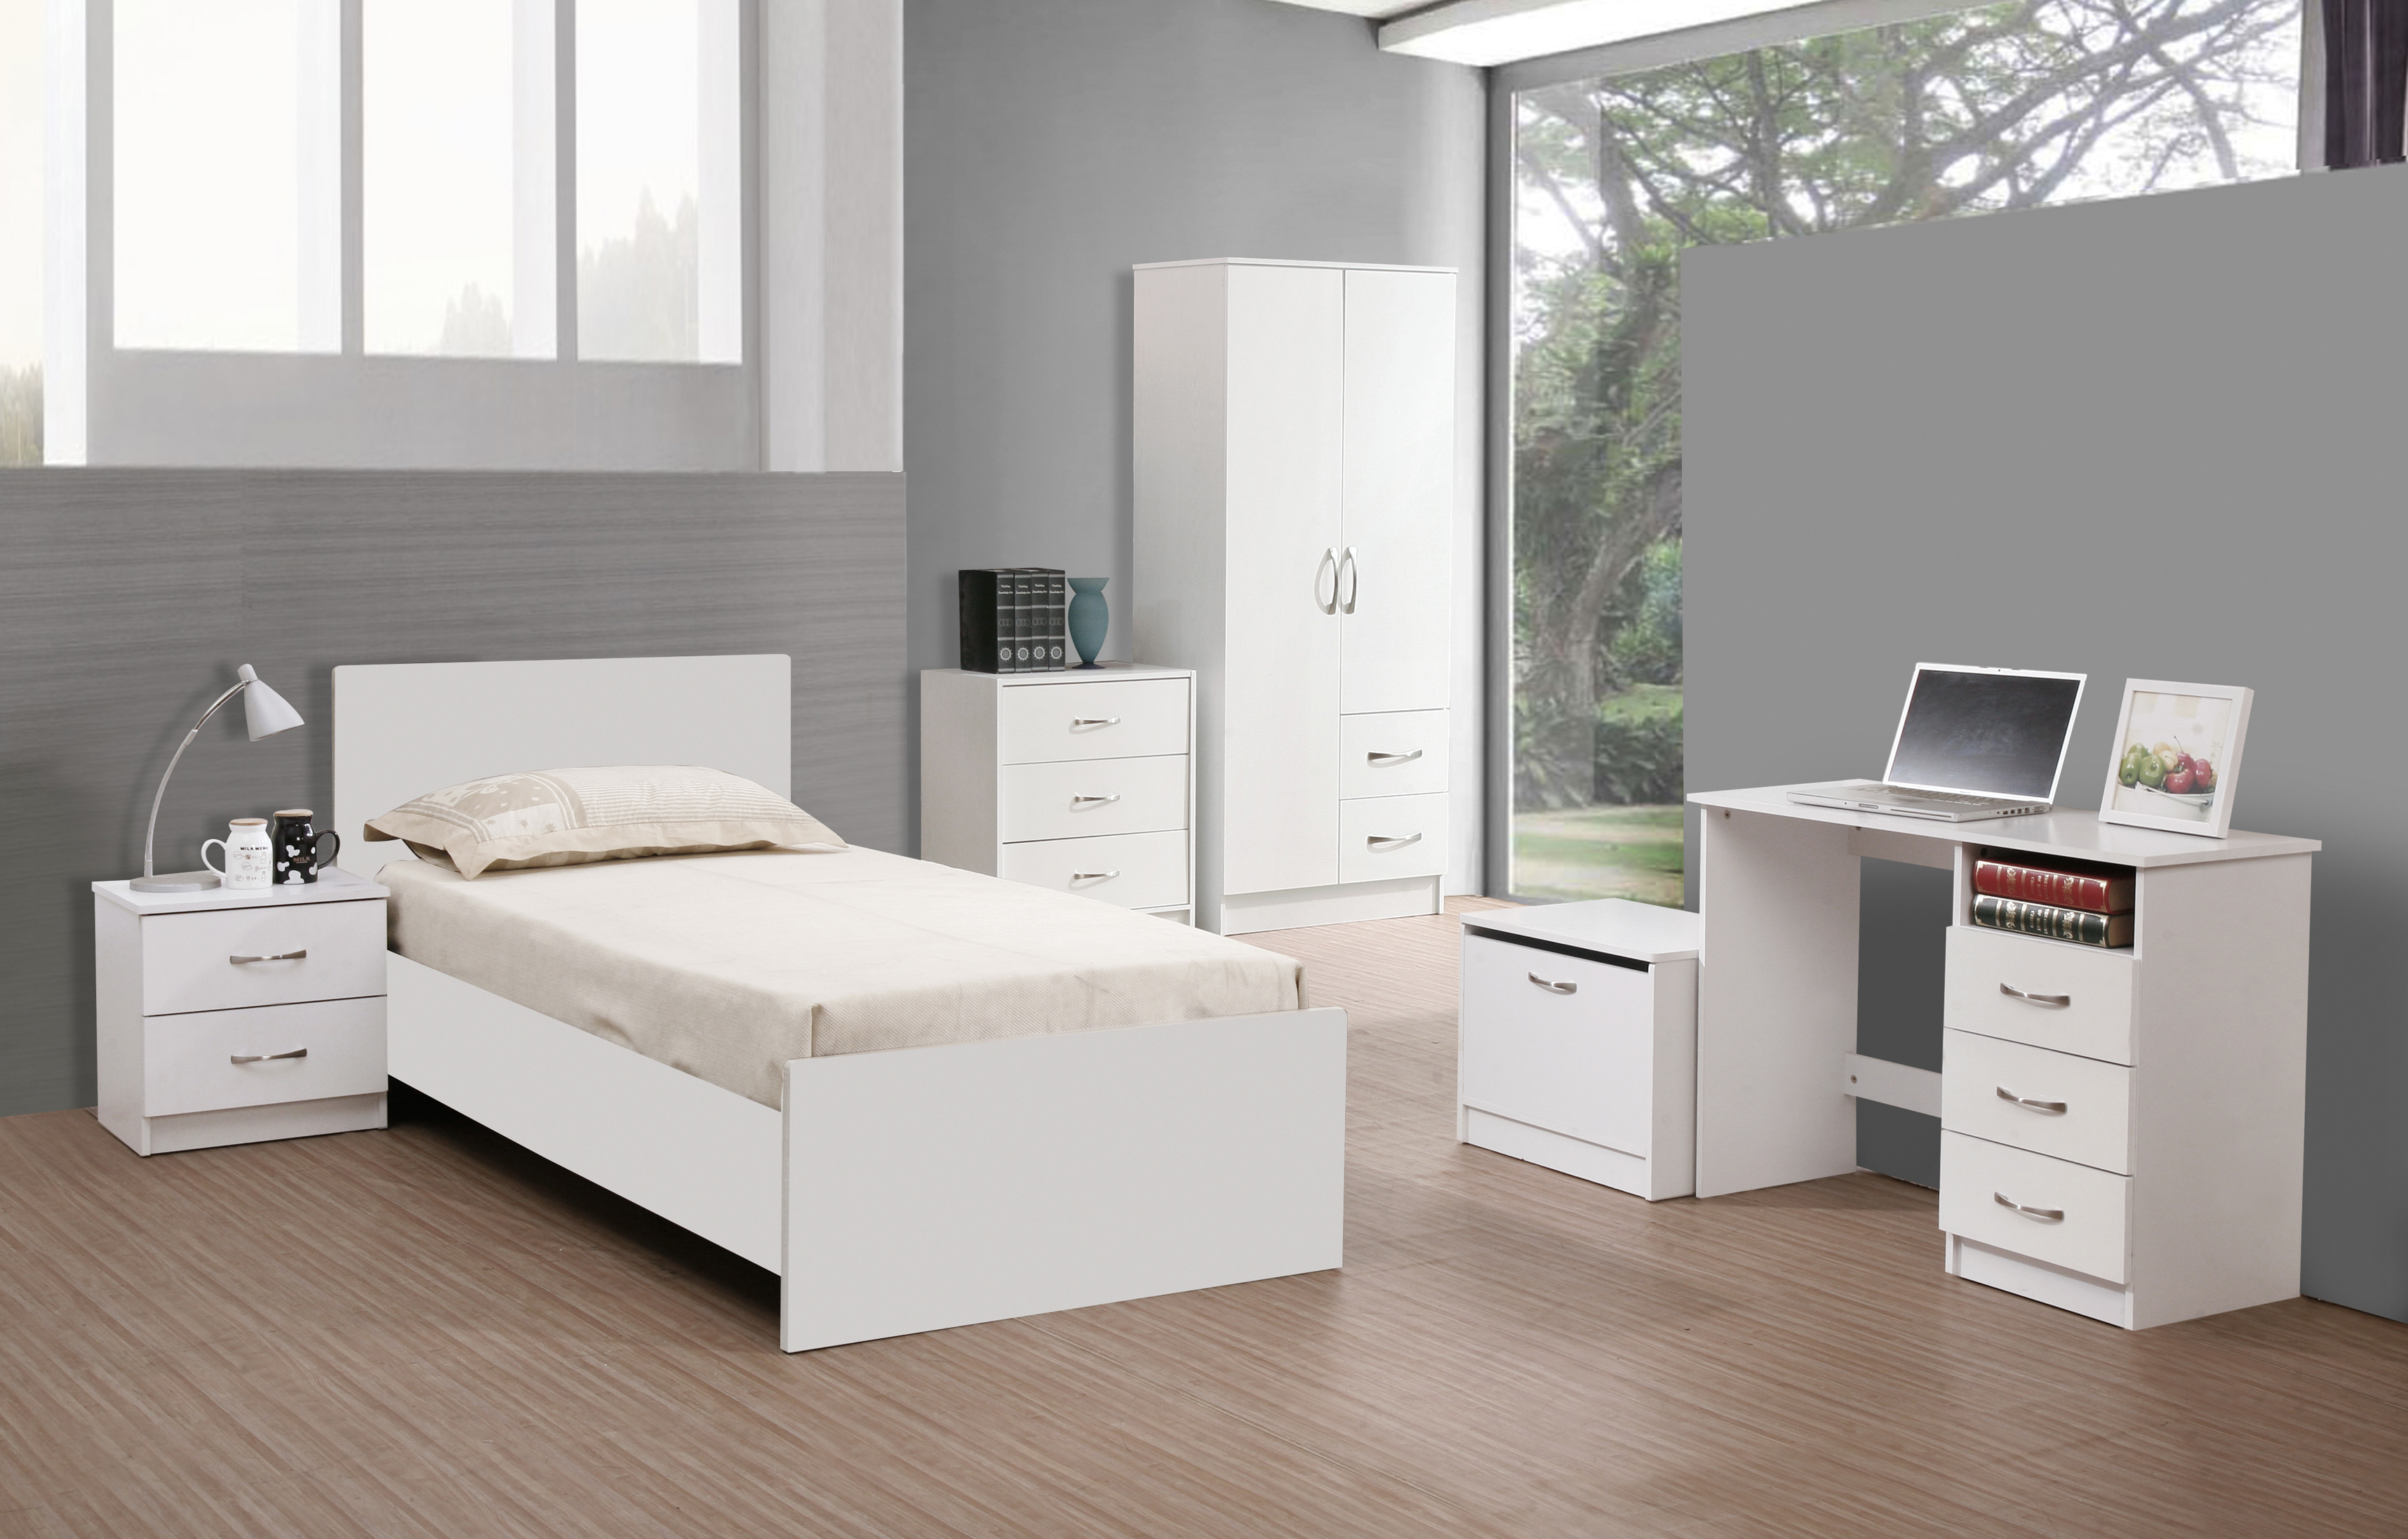 White Cottage Bedroom Furniture Set Design In Inspiration Likable Decorating Ideas Minimalist With Solid Wood Single Bed And Wooden Computer Desk HGNV.COM